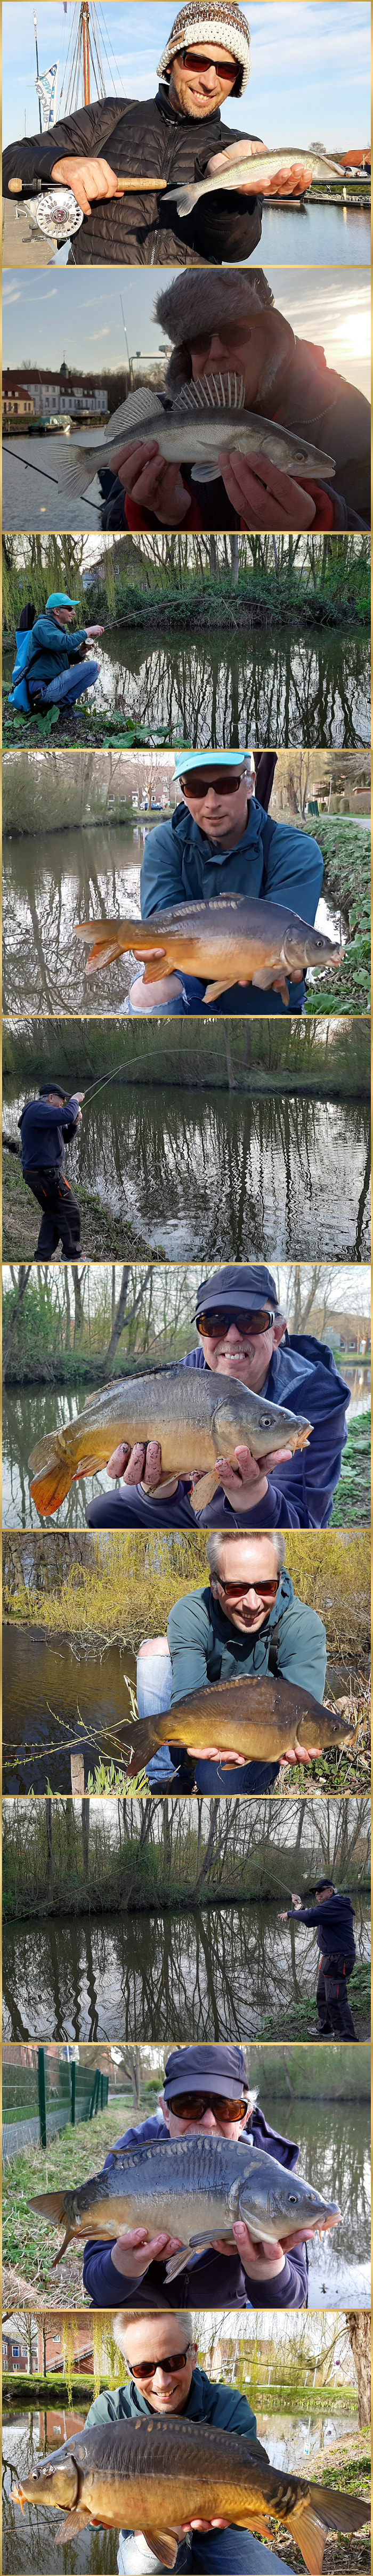 flyfishing on carp